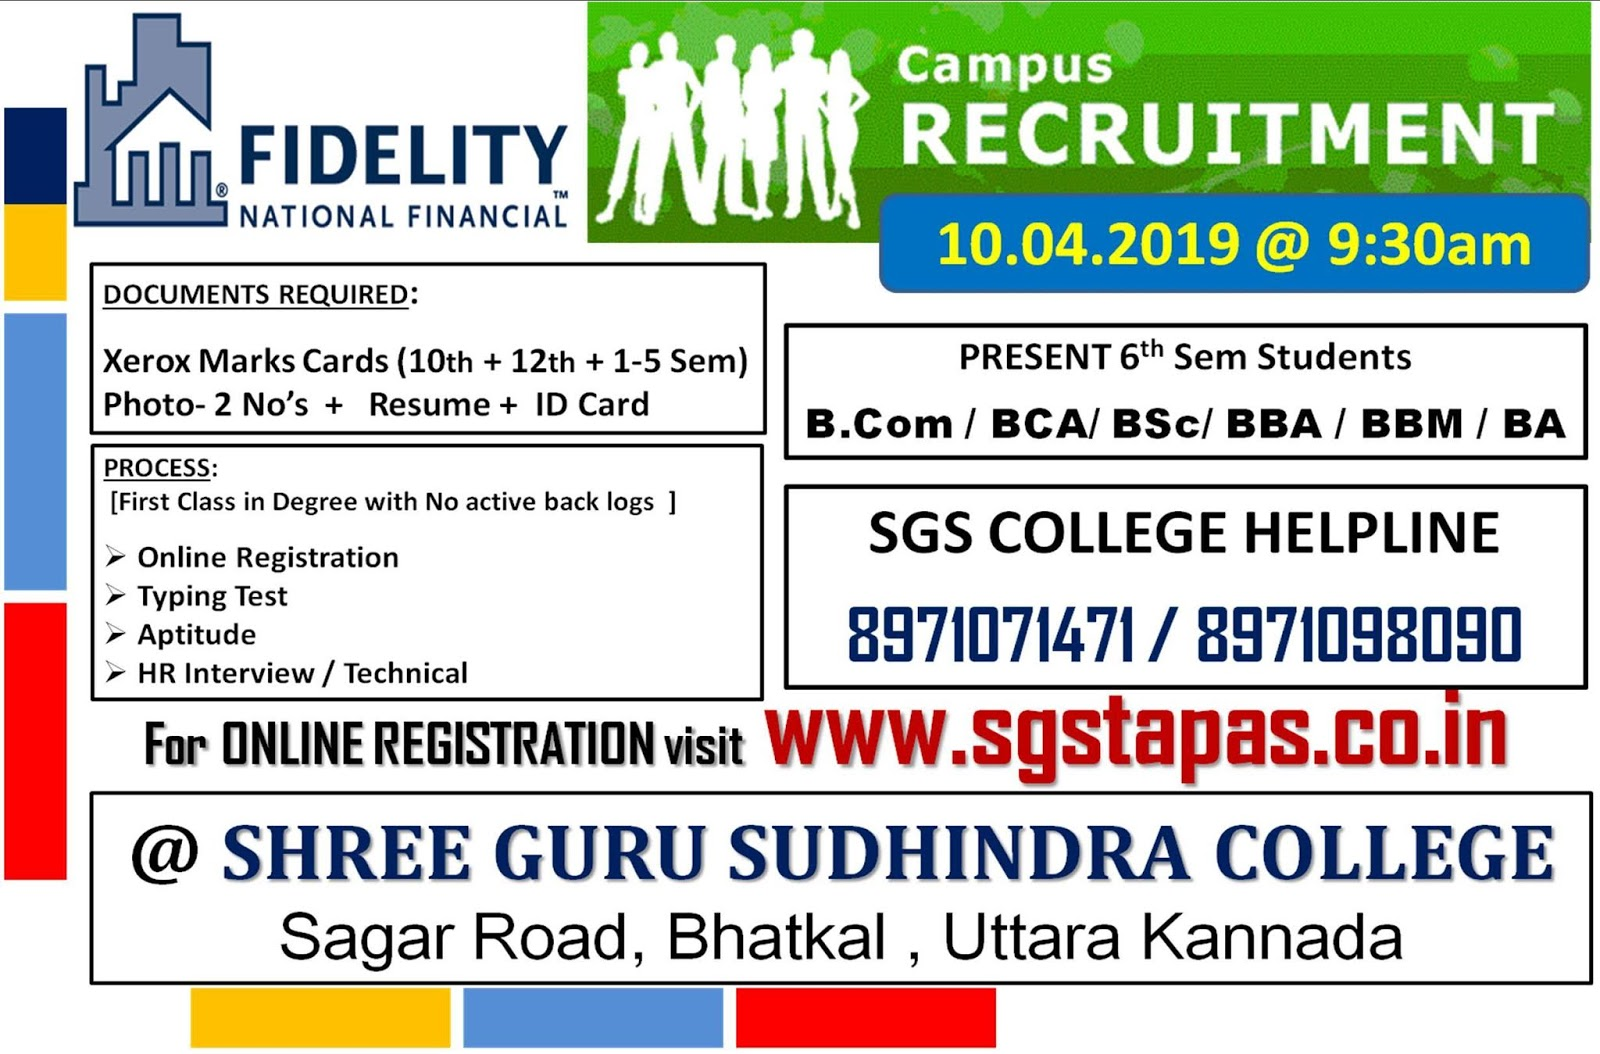 FnF Campus Recruitment Drive